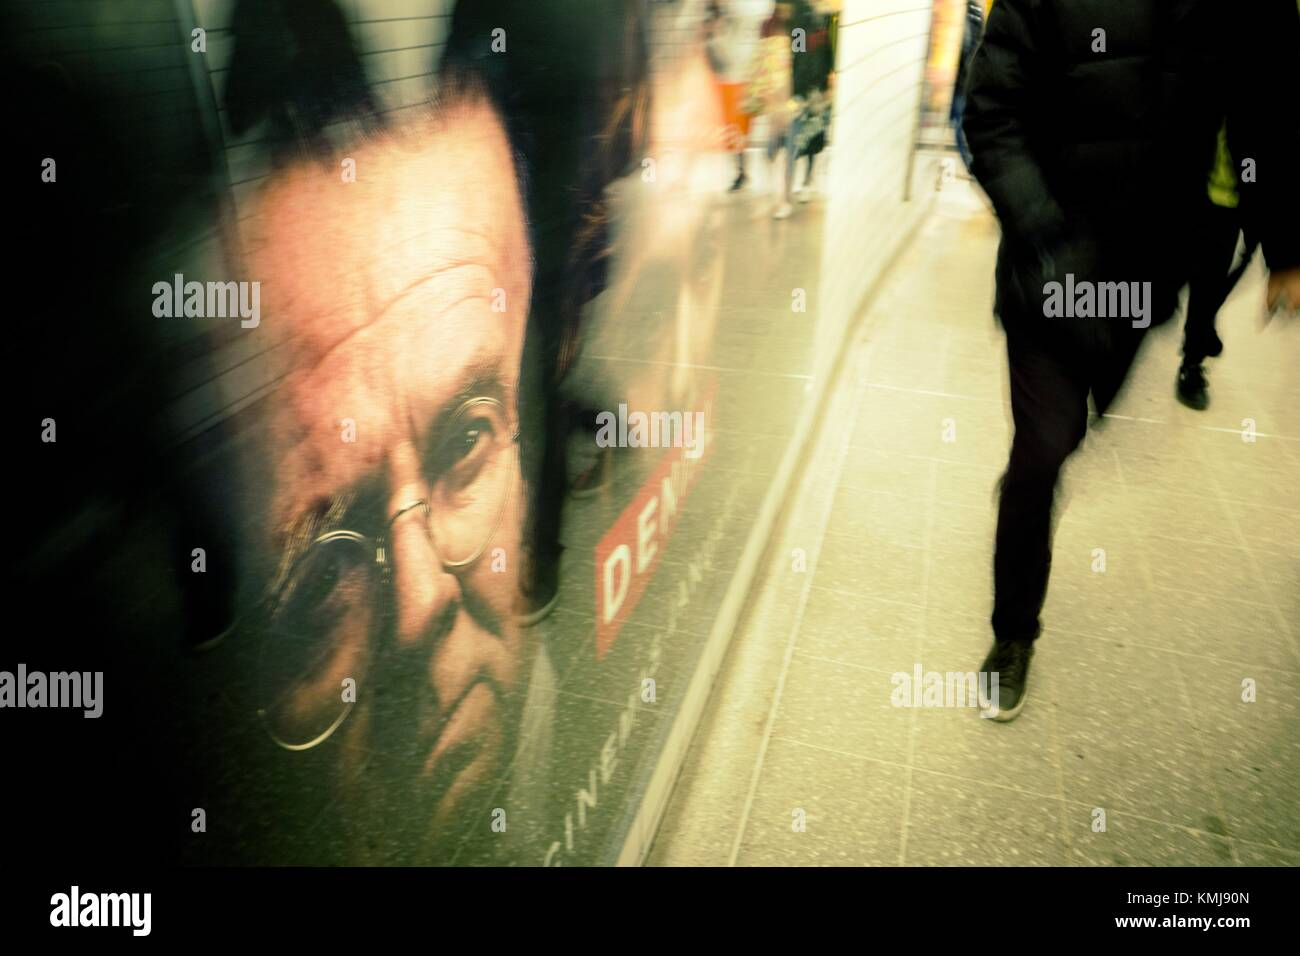 Underground corridor with people and poster of the film 'Denial'. London, England - Stock Image